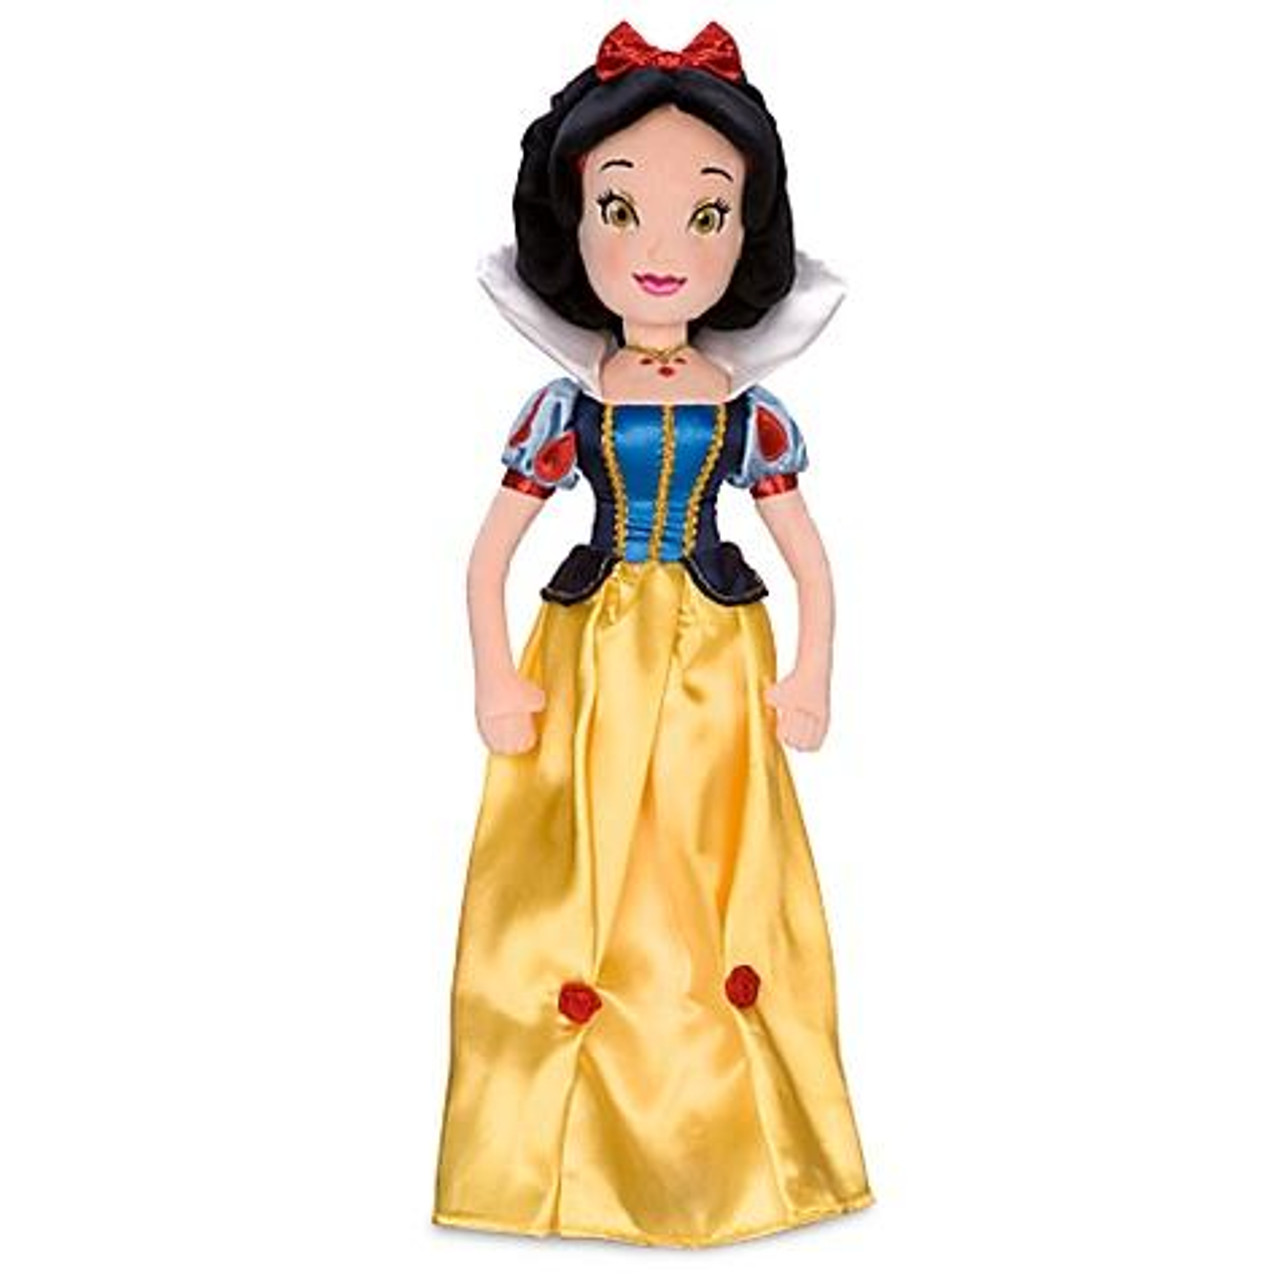 Disney Princess Snow White 20-Inch Plush Doll [Version 1]